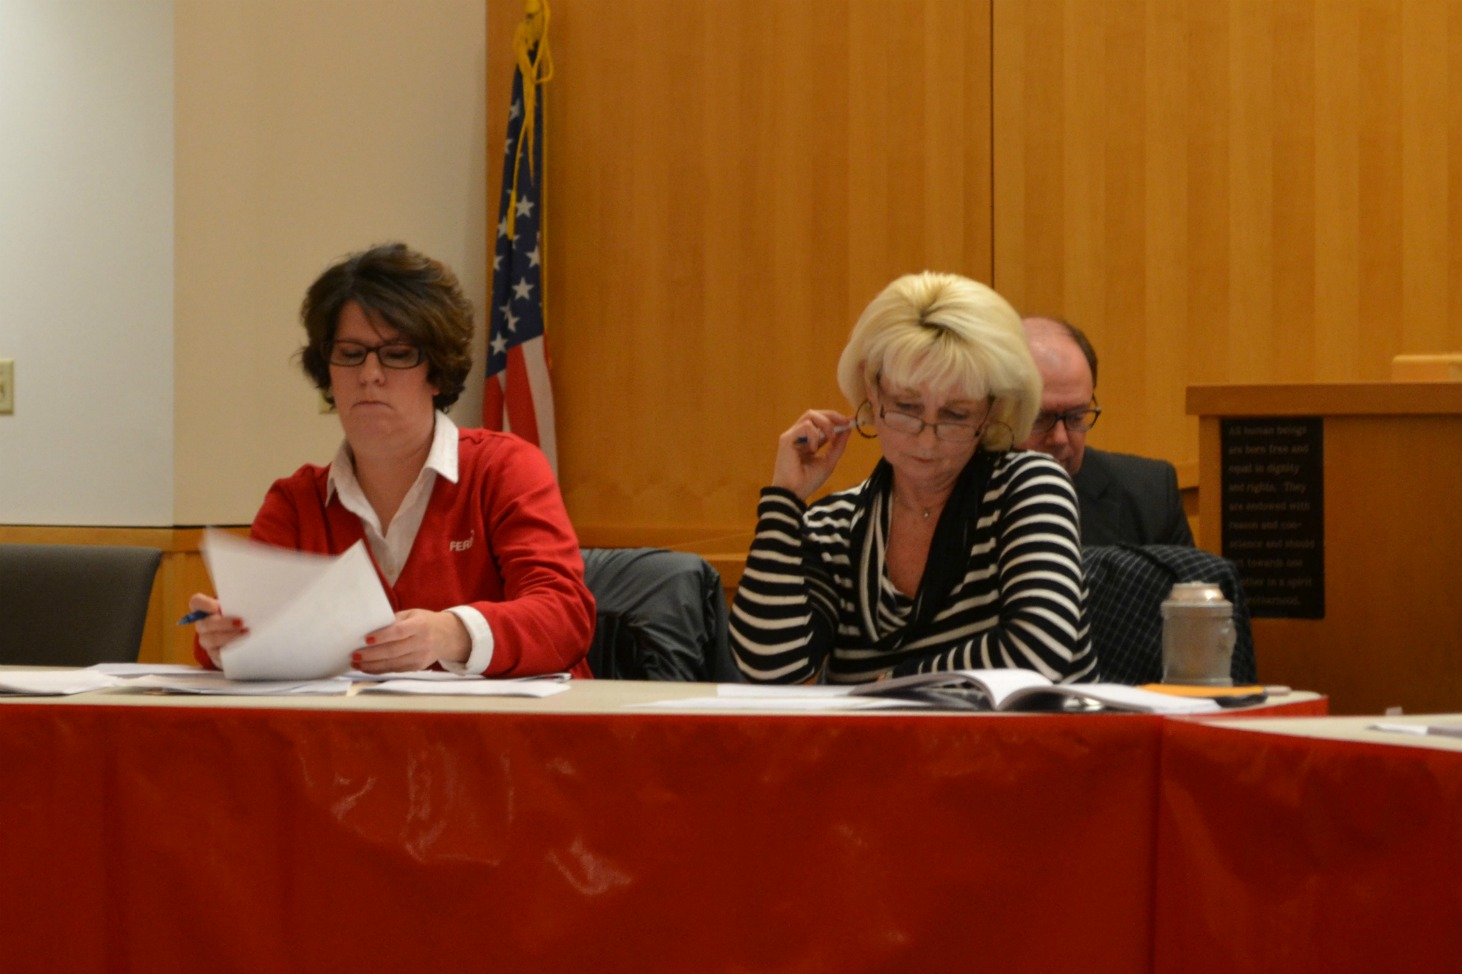 Pictured are council members Tracy Aranyos, left, and Ann Morris. (HCP Photo/Caitlin Forsha)